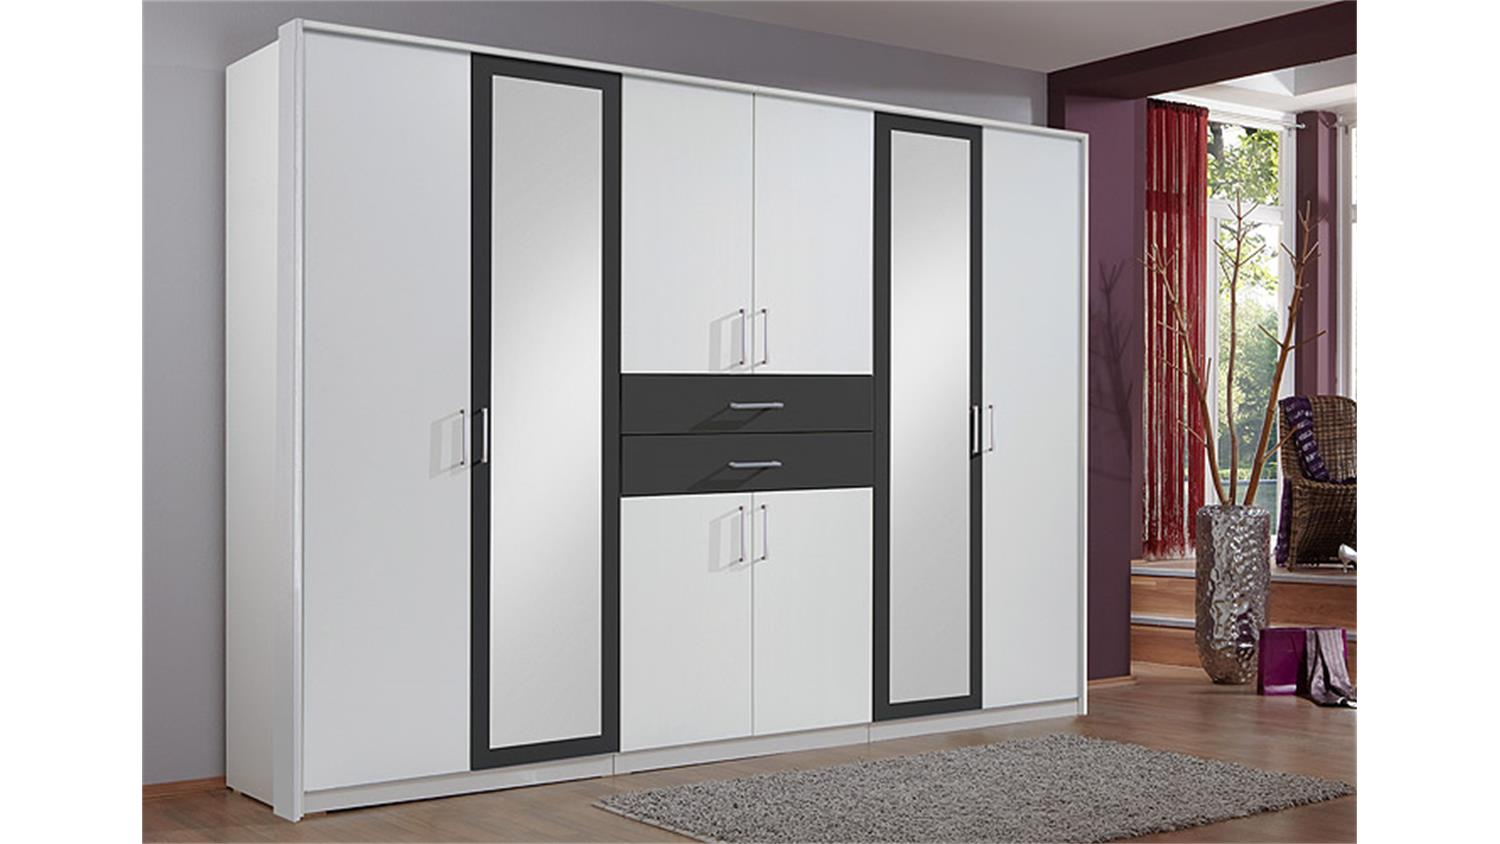 kleiderschrank diver wei absetzungen anthrazit b 270 cm. Black Bedroom Furniture Sets. Home Design Ideas